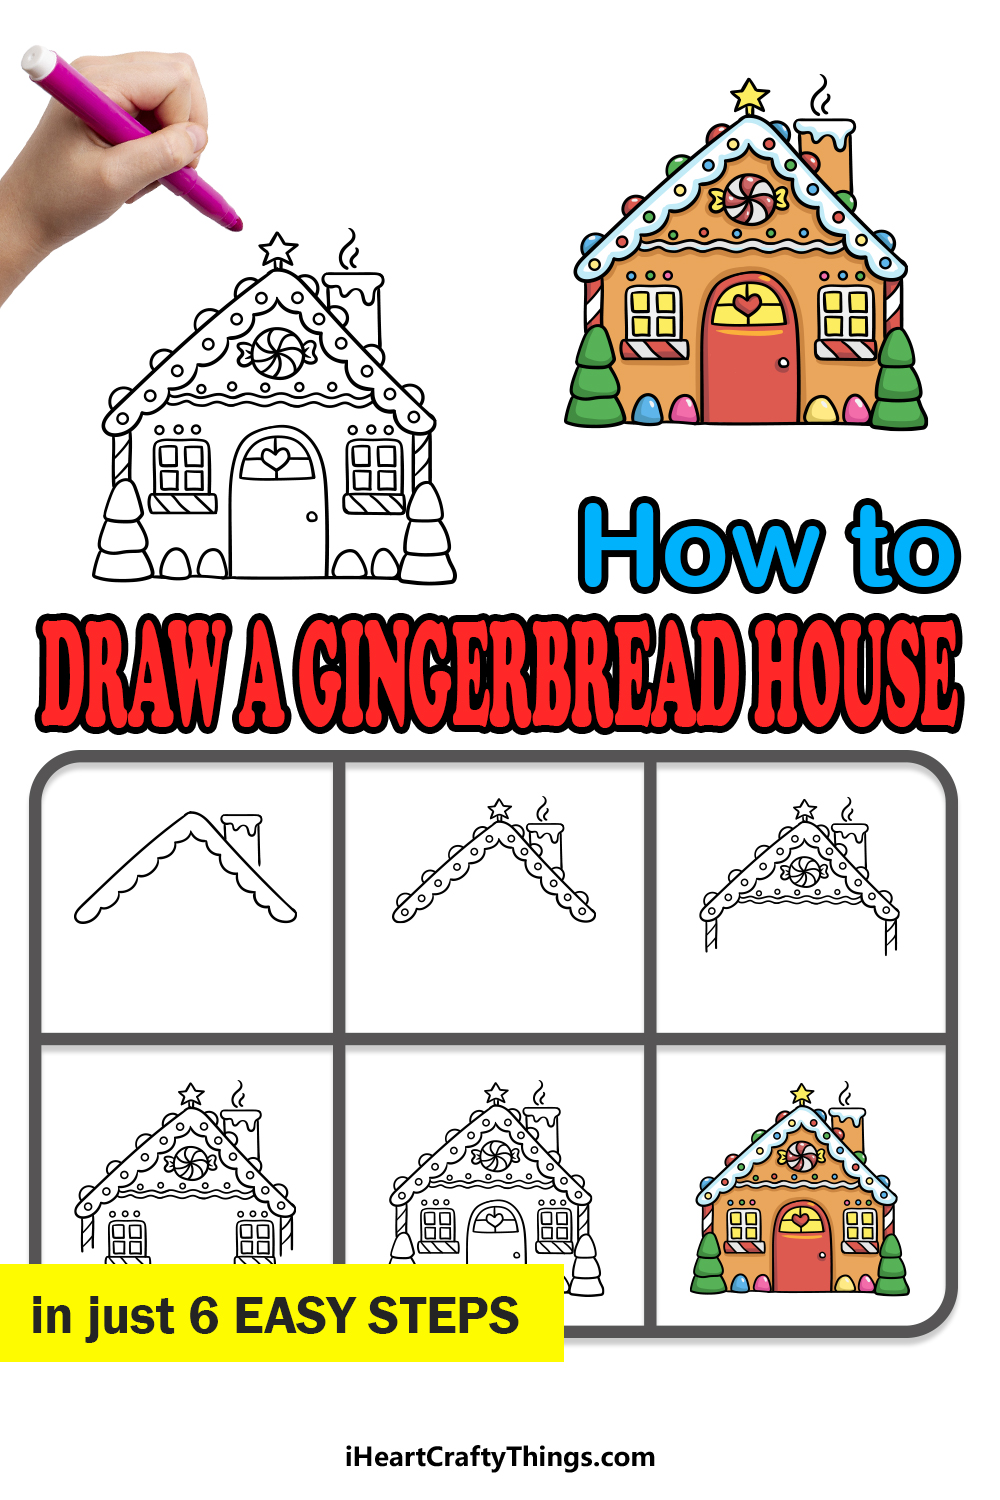 how to draw a gingerbread house in 6 easy  steps